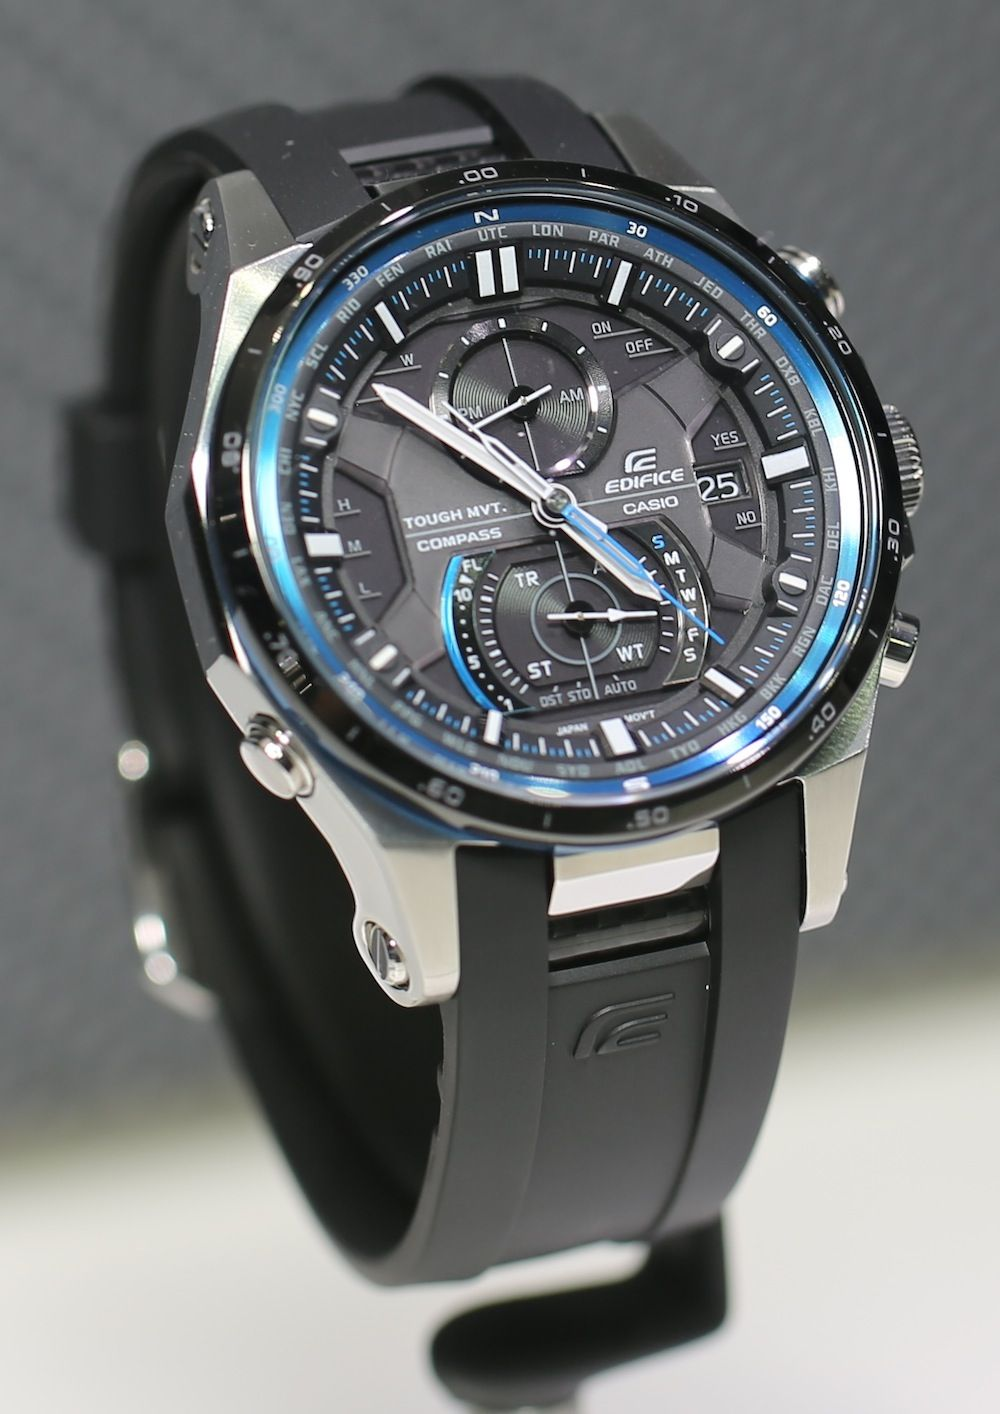 Casio Edifice EQWA1200 Sensor Chronograph Watch For 2013